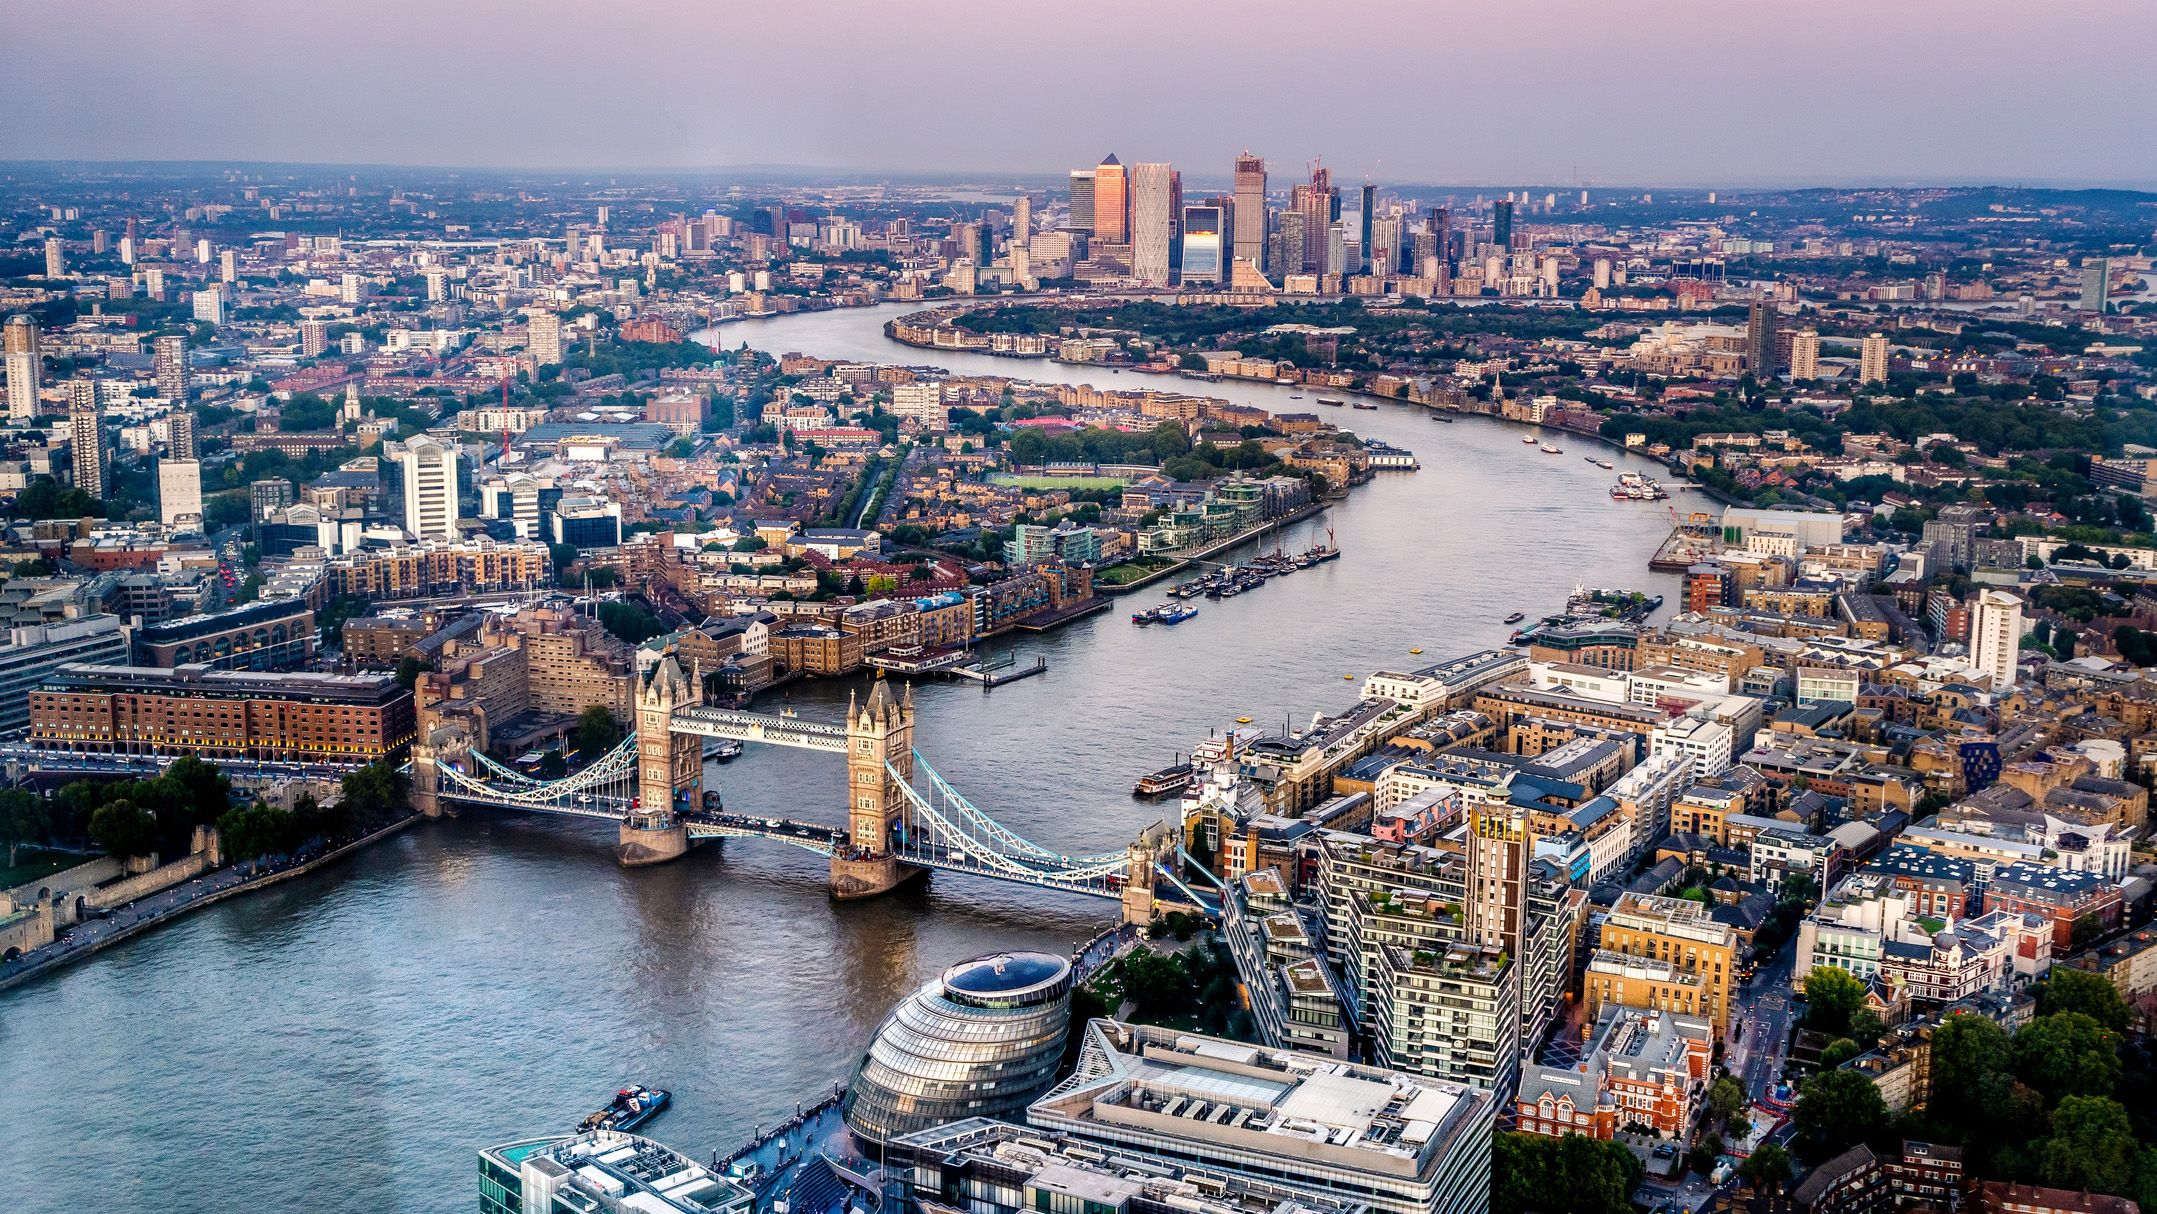 The River Thames is one of the greatest and largest archaeological sites in the world (Credit: Circle Creative Studio/Getty Images)